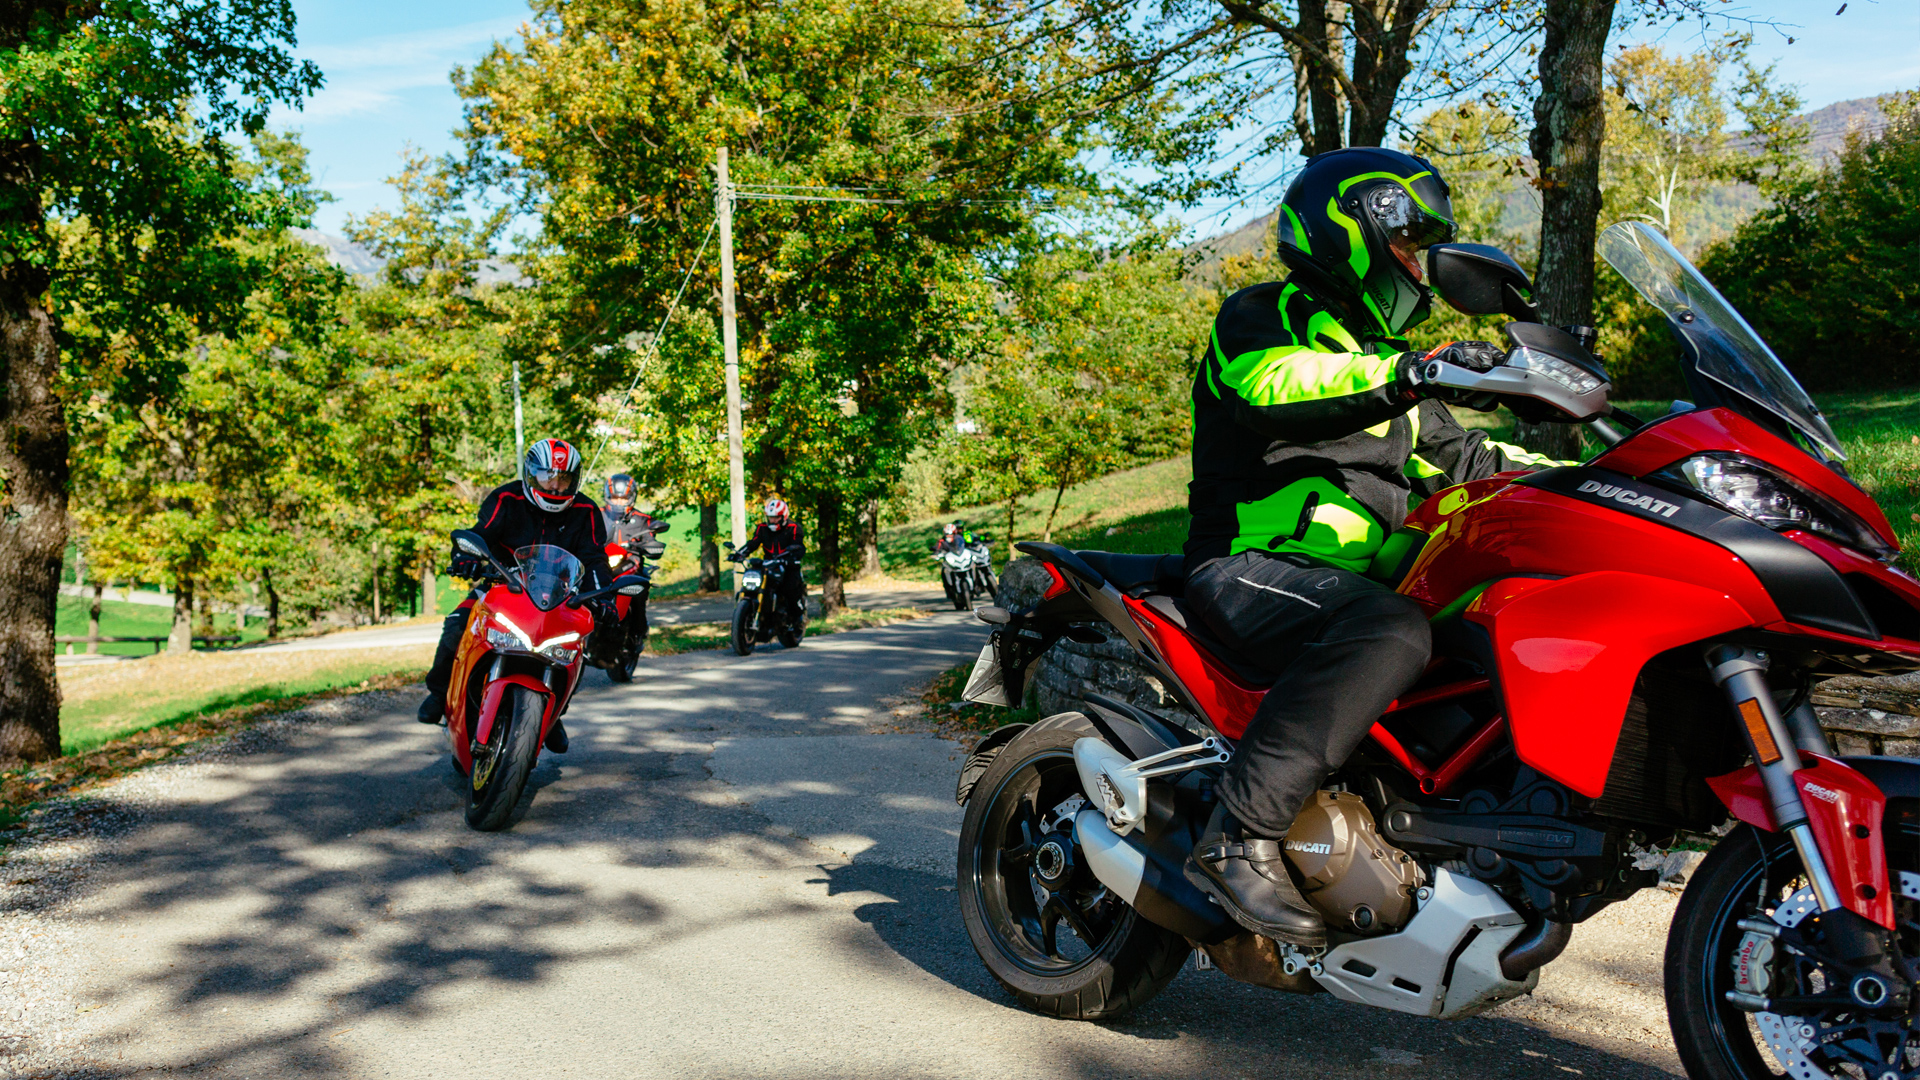 Ducati Dream Tour 2016, Five Unforgettable Weekends On The New Ducati Models